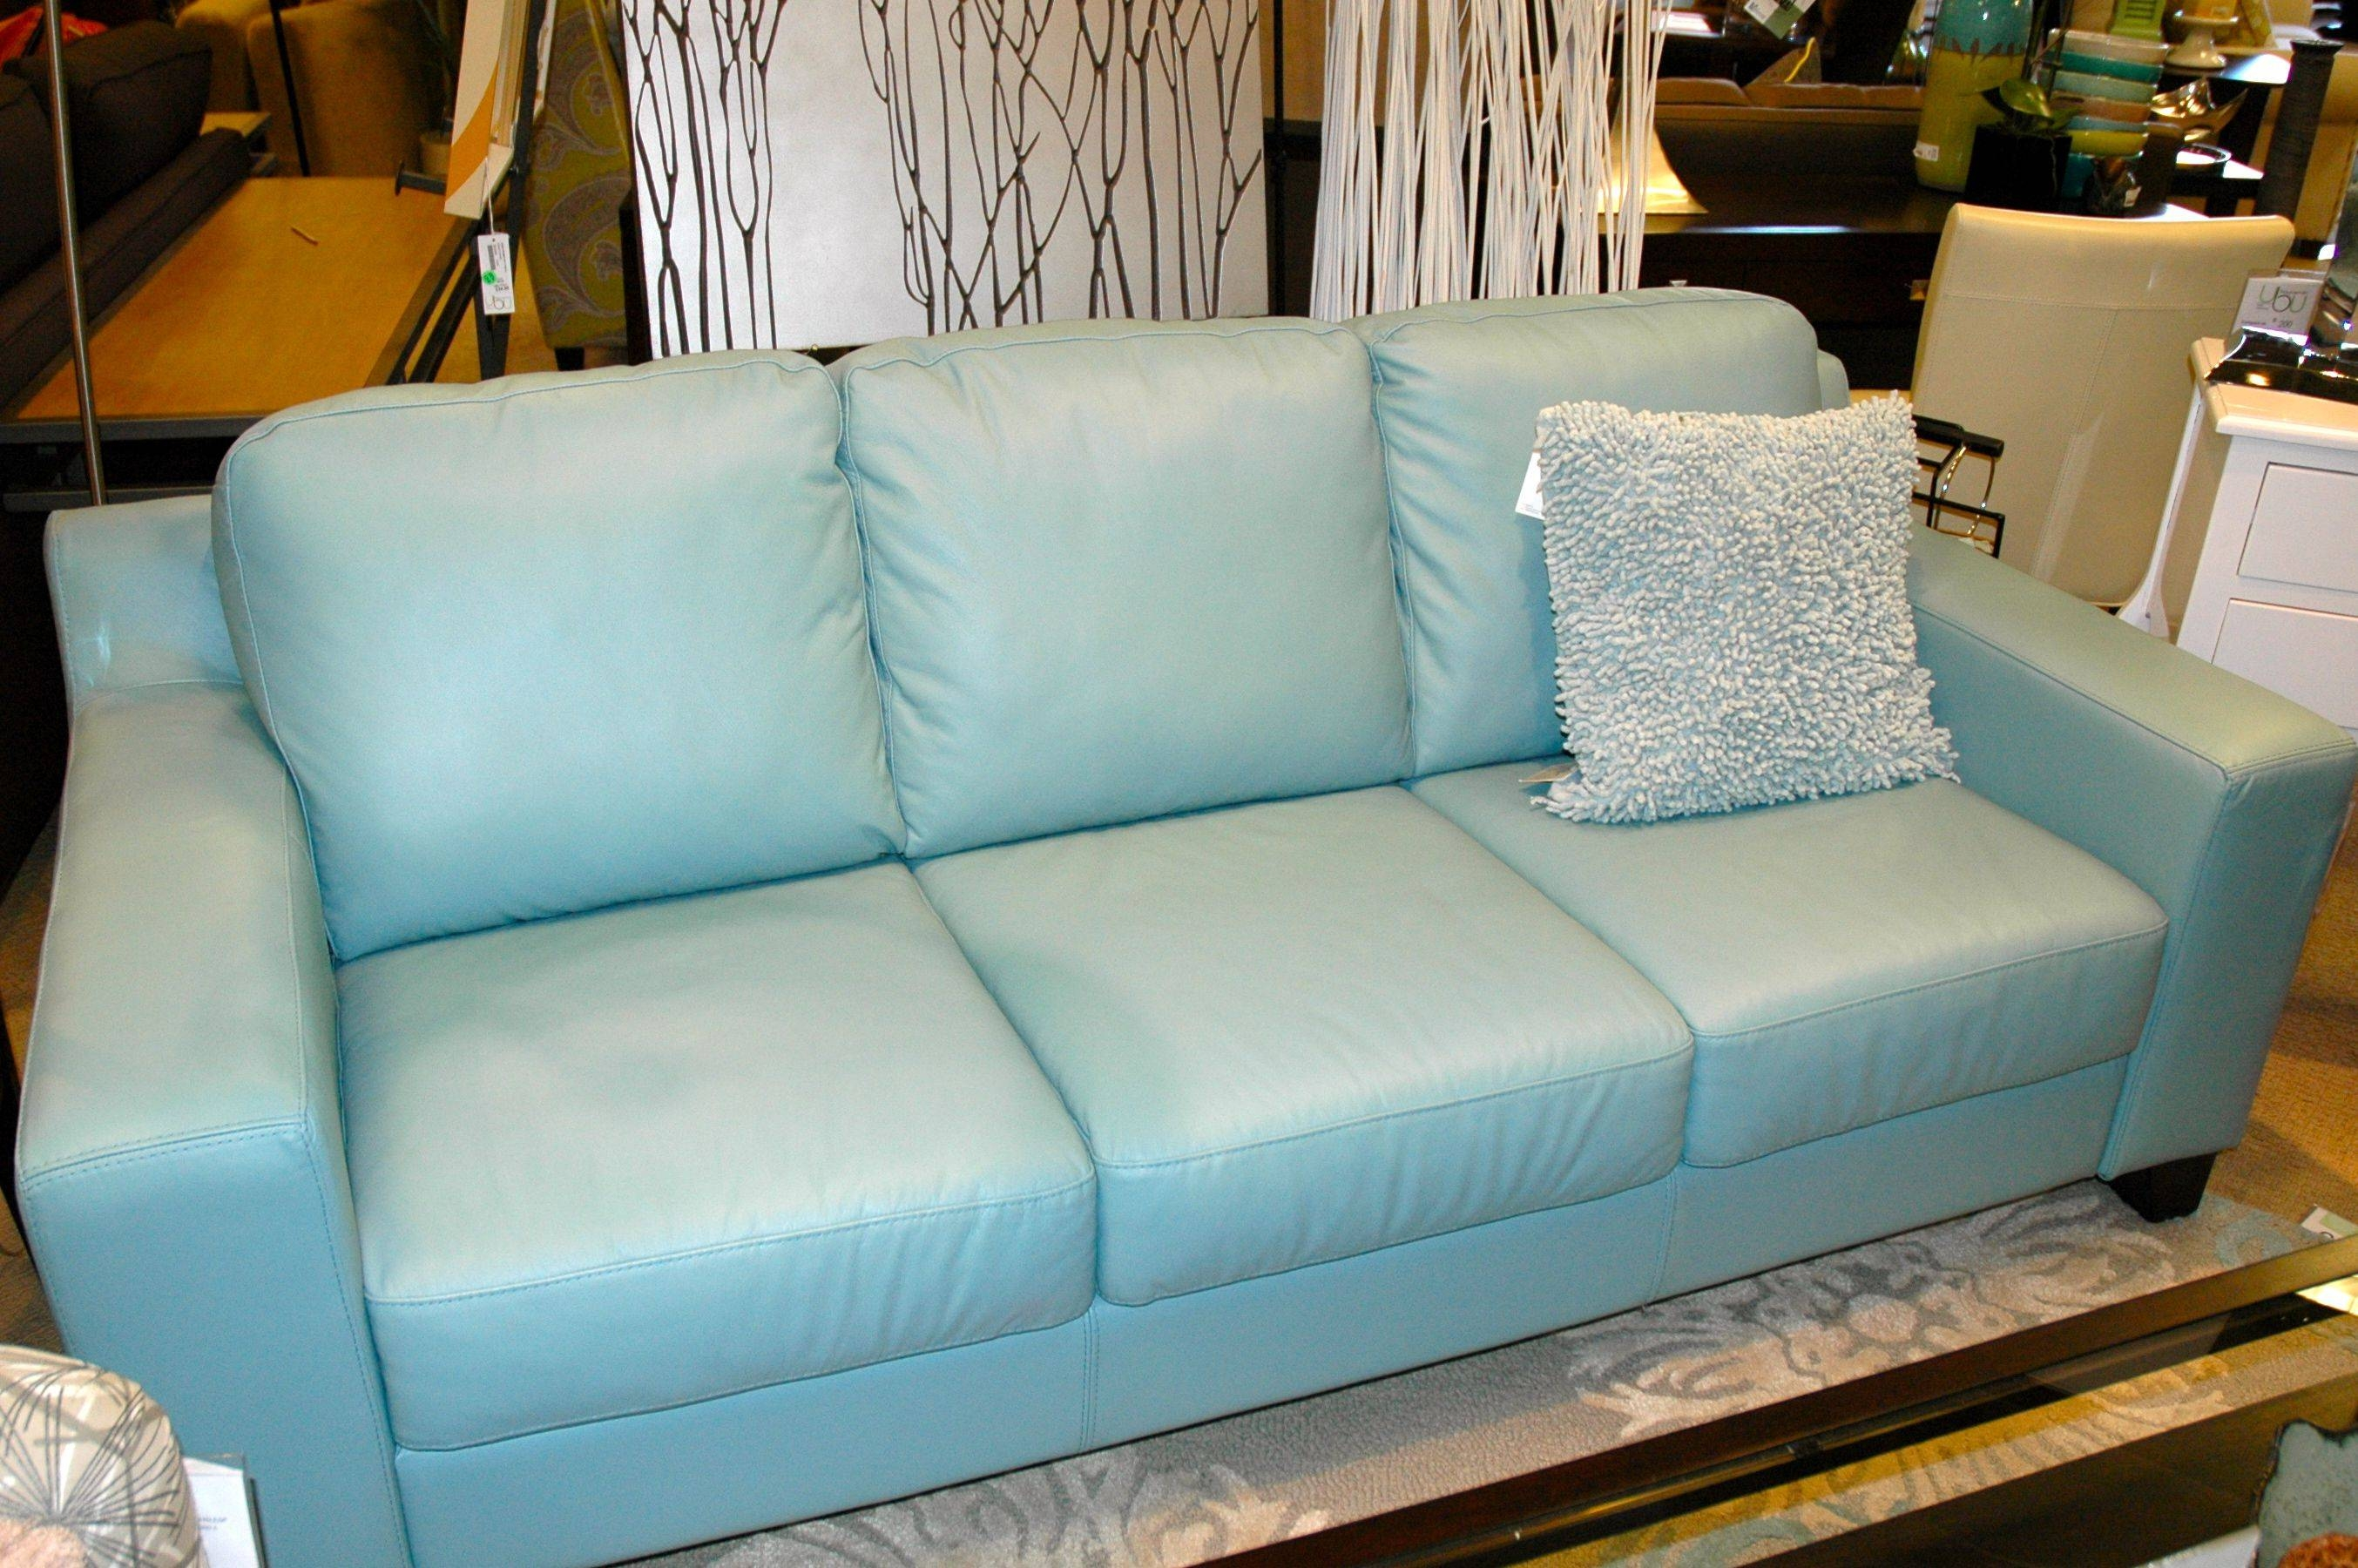 Cute Light Blue Cushion Placed On Comfortable Blue Leather Sofa At in Sky Blue Sofas (Image 5 of 15)